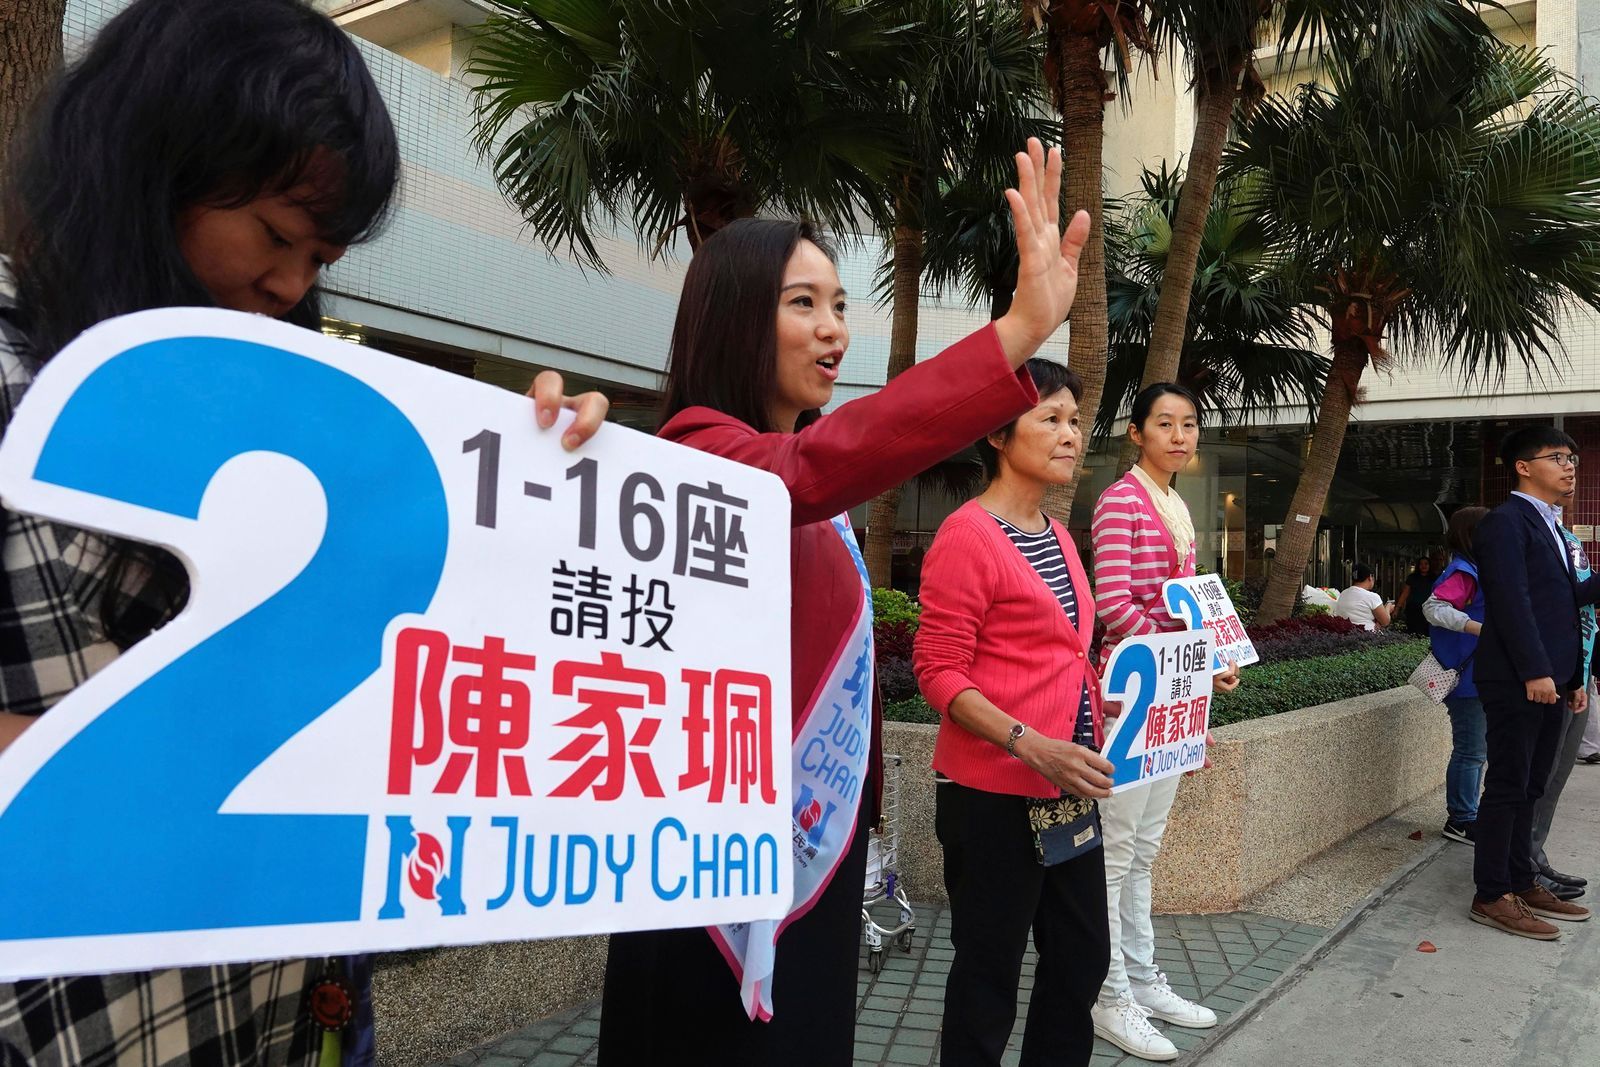 "Pro-government candidate Judy Chan, second from left, campaigns ahead of local elections in Hong Kong, Saturday, Nov. 23, 2019. Chanting ""No more tear gas,"" dozens of Hong Kong families with young children are marching to oppose the government's handling of protests on the eve of keenly contested local elections. (AP Photo/Vincent Yu)"